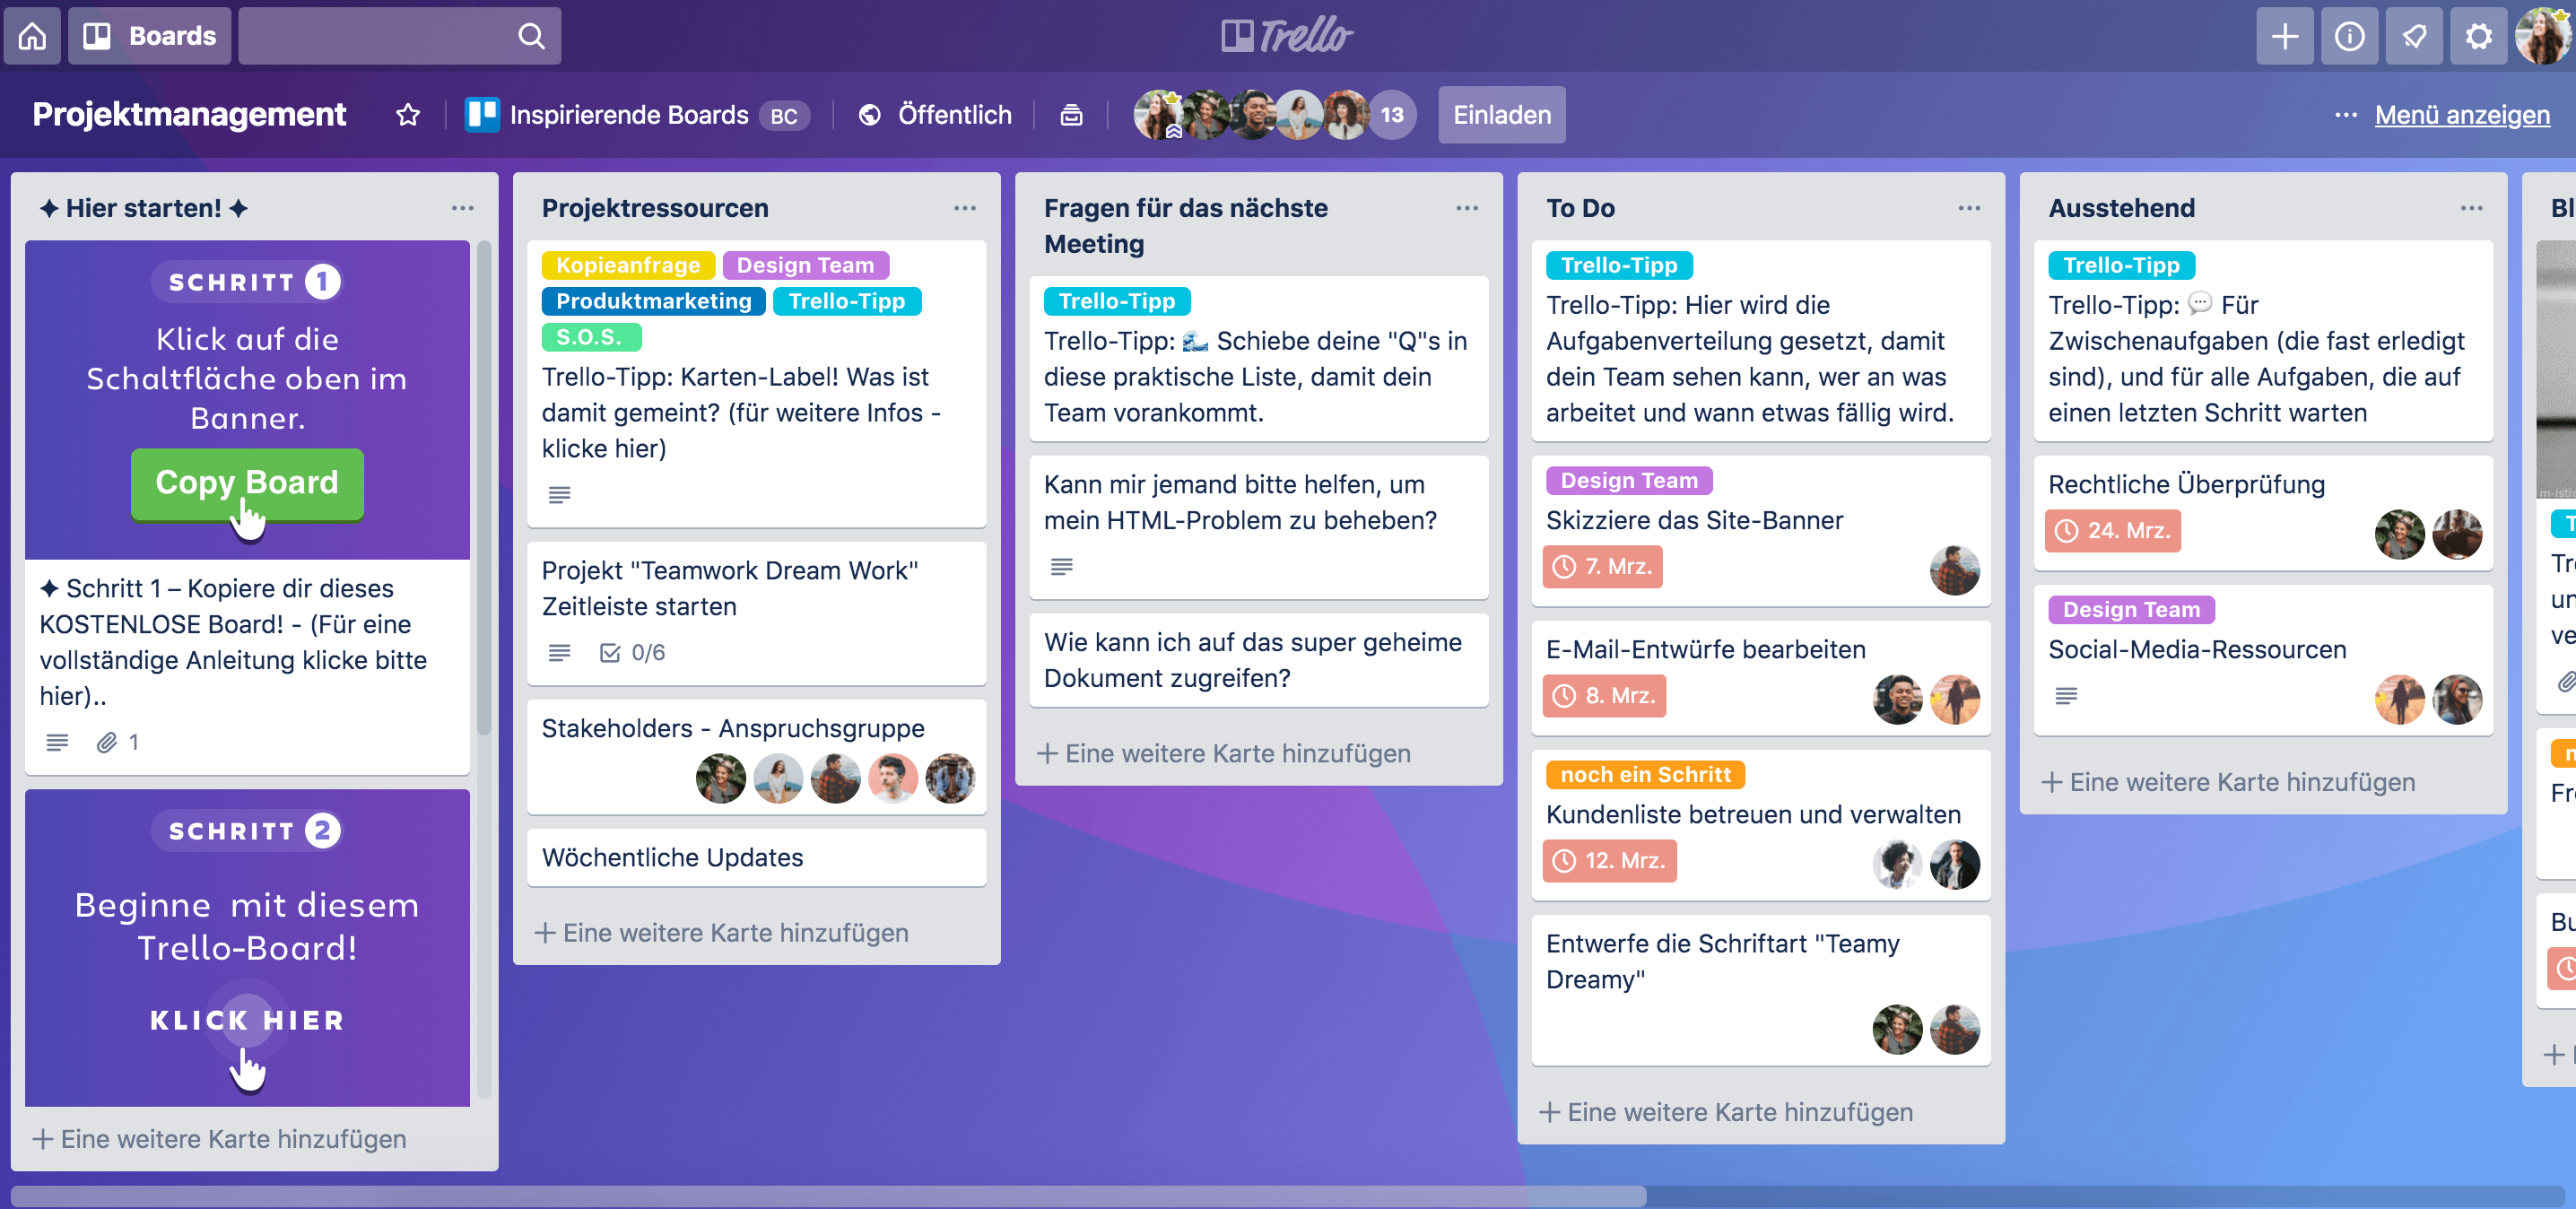 Projektmanagement-Workflow im Trello-Board